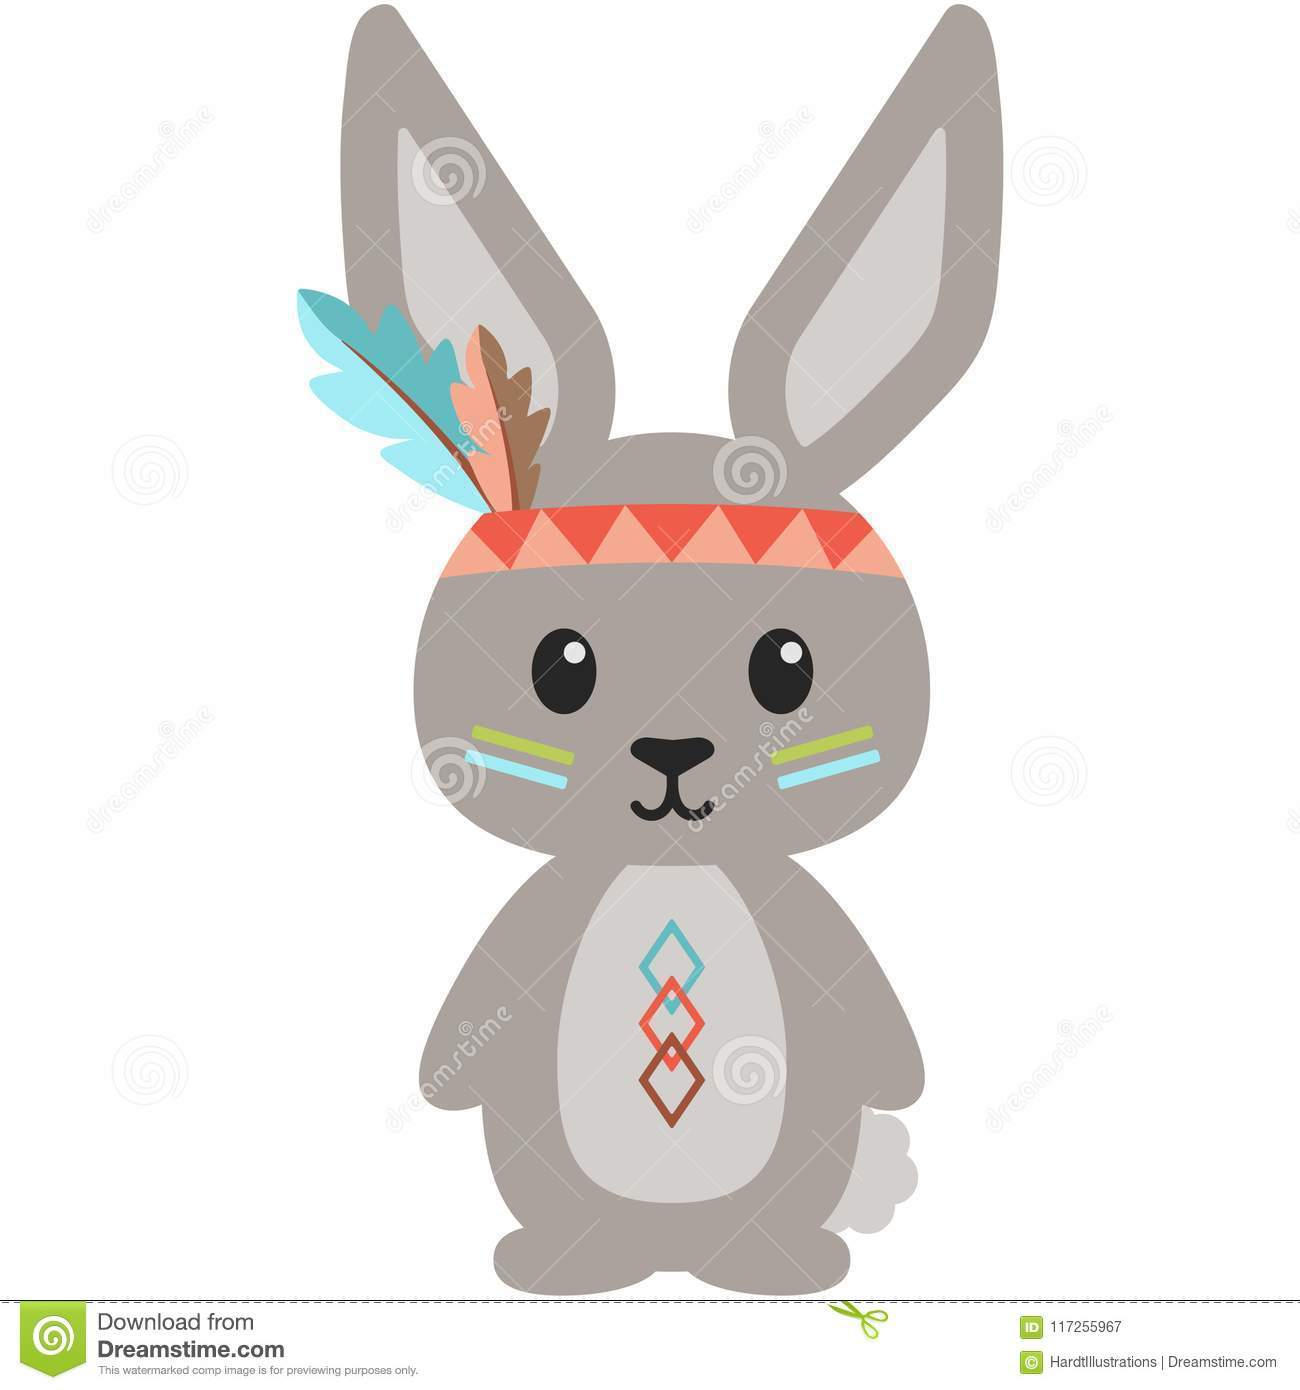 Woodland bunny clipart svg freeuse download Woodland bunny clipart 7 » Clipart Portal svg freeuse download